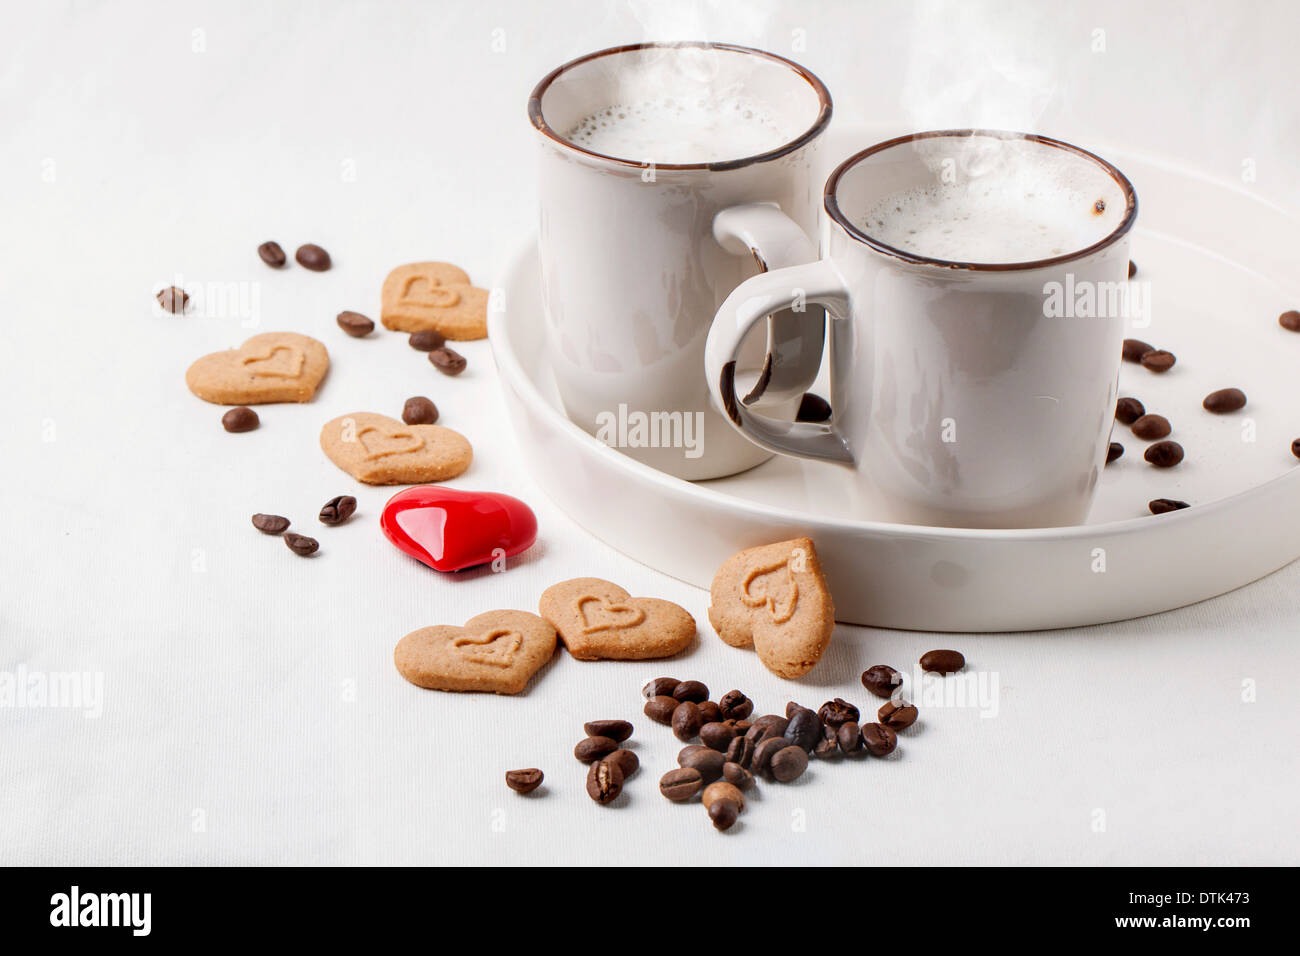 Two cups of cappuccino served with spices and cookies as hearts and one red heart on white textile. - Stock Image